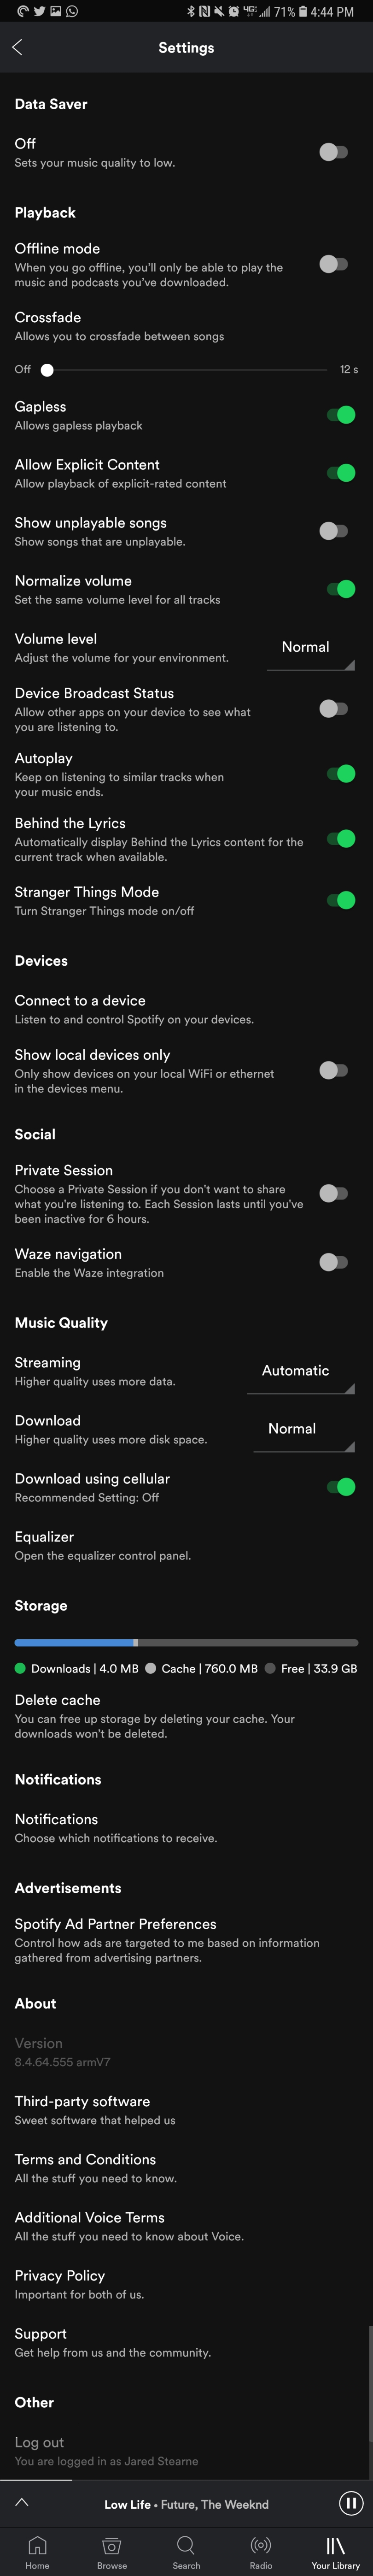 Screenshot_20180806-164419_Spotify.jpg